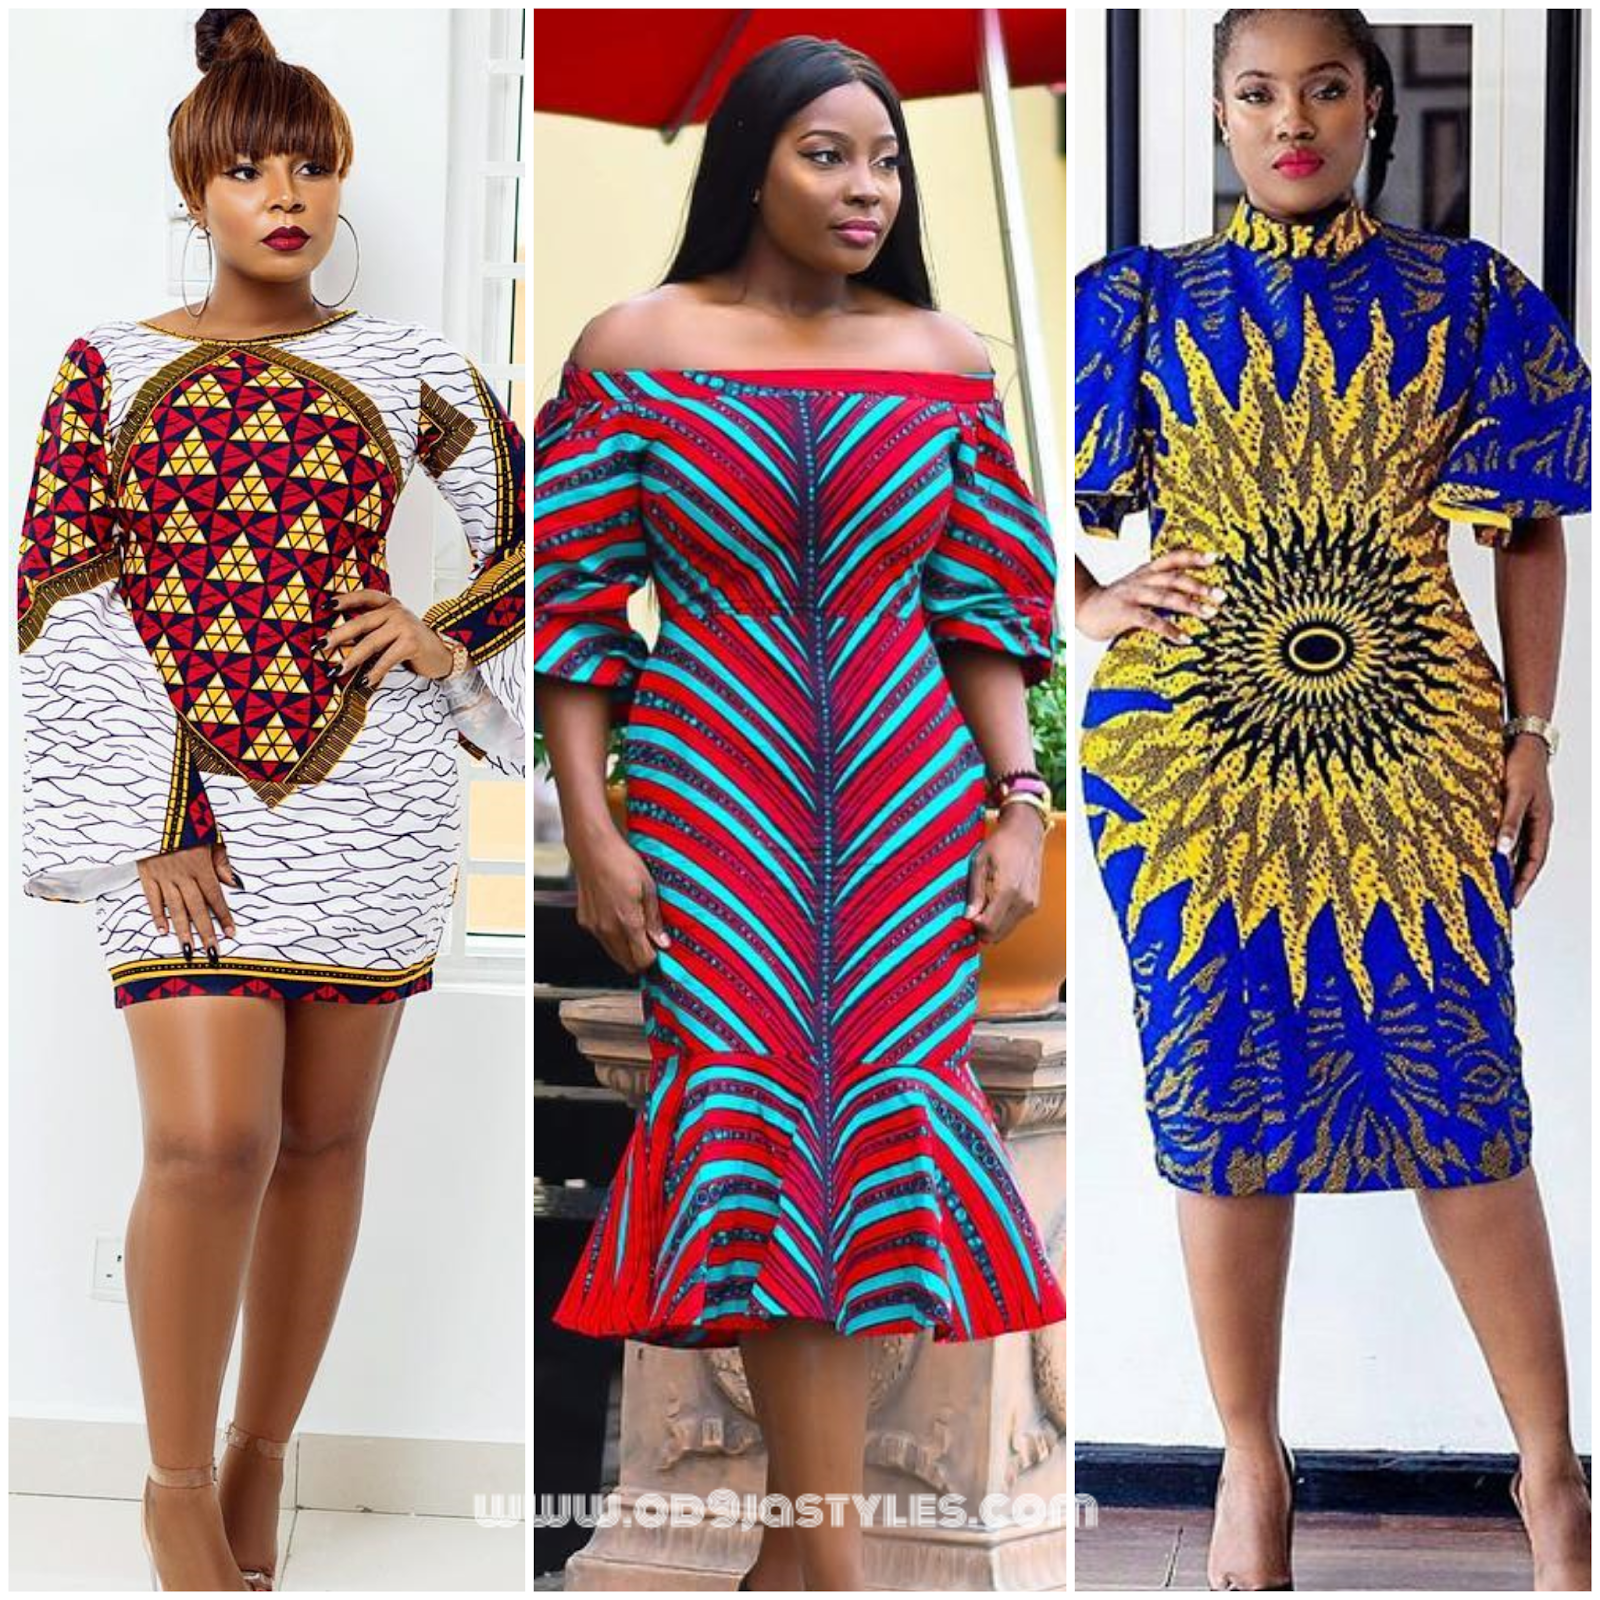 New Fashion Styles Latest Ankara Gown Styles 2018 You Should Try Out